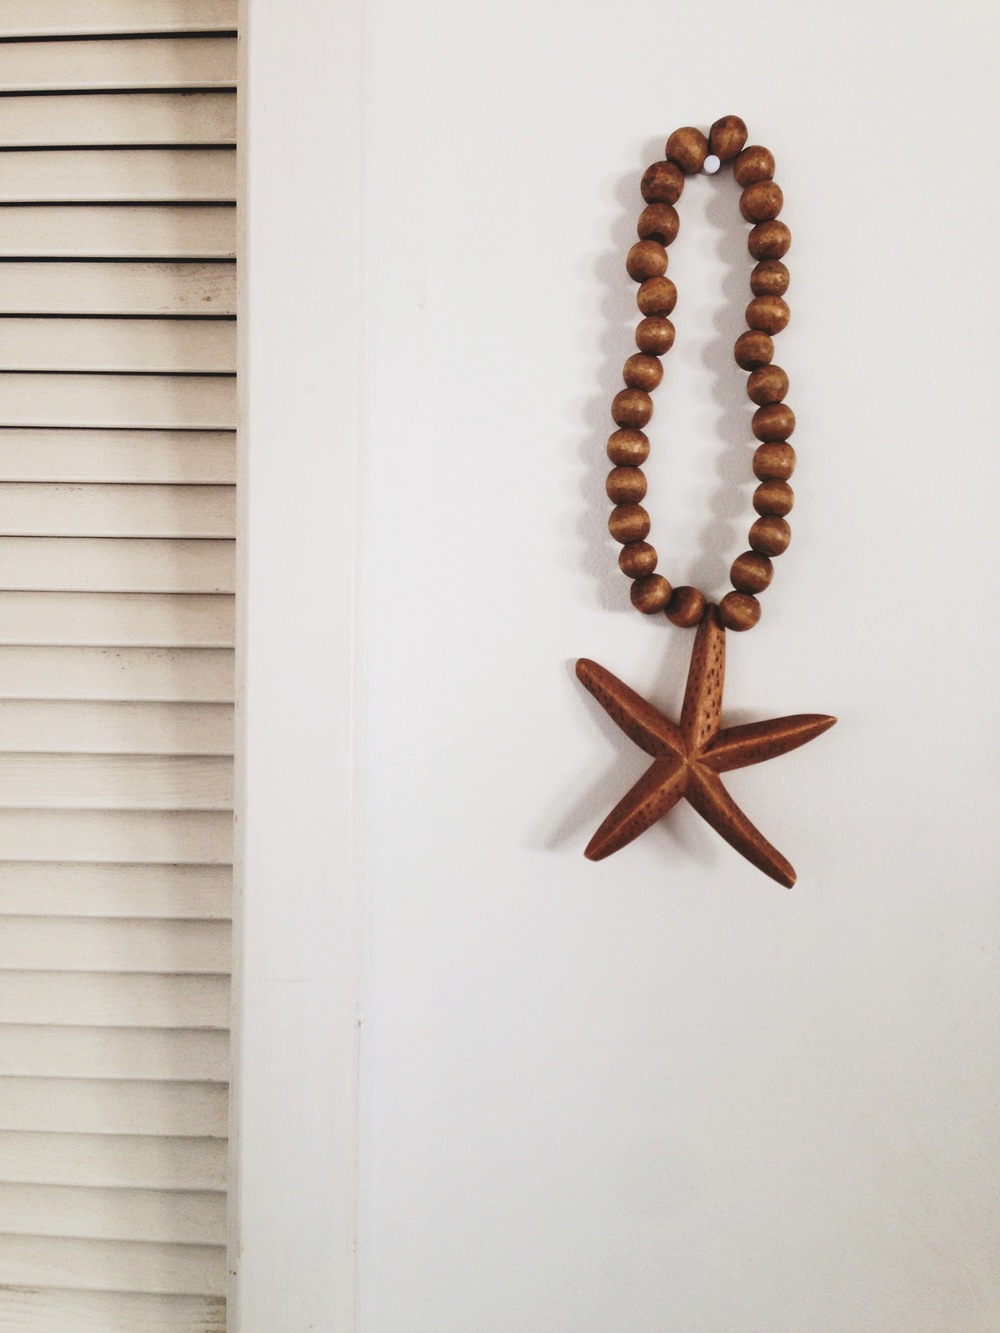 Starfish, Stacey Woods Instagram